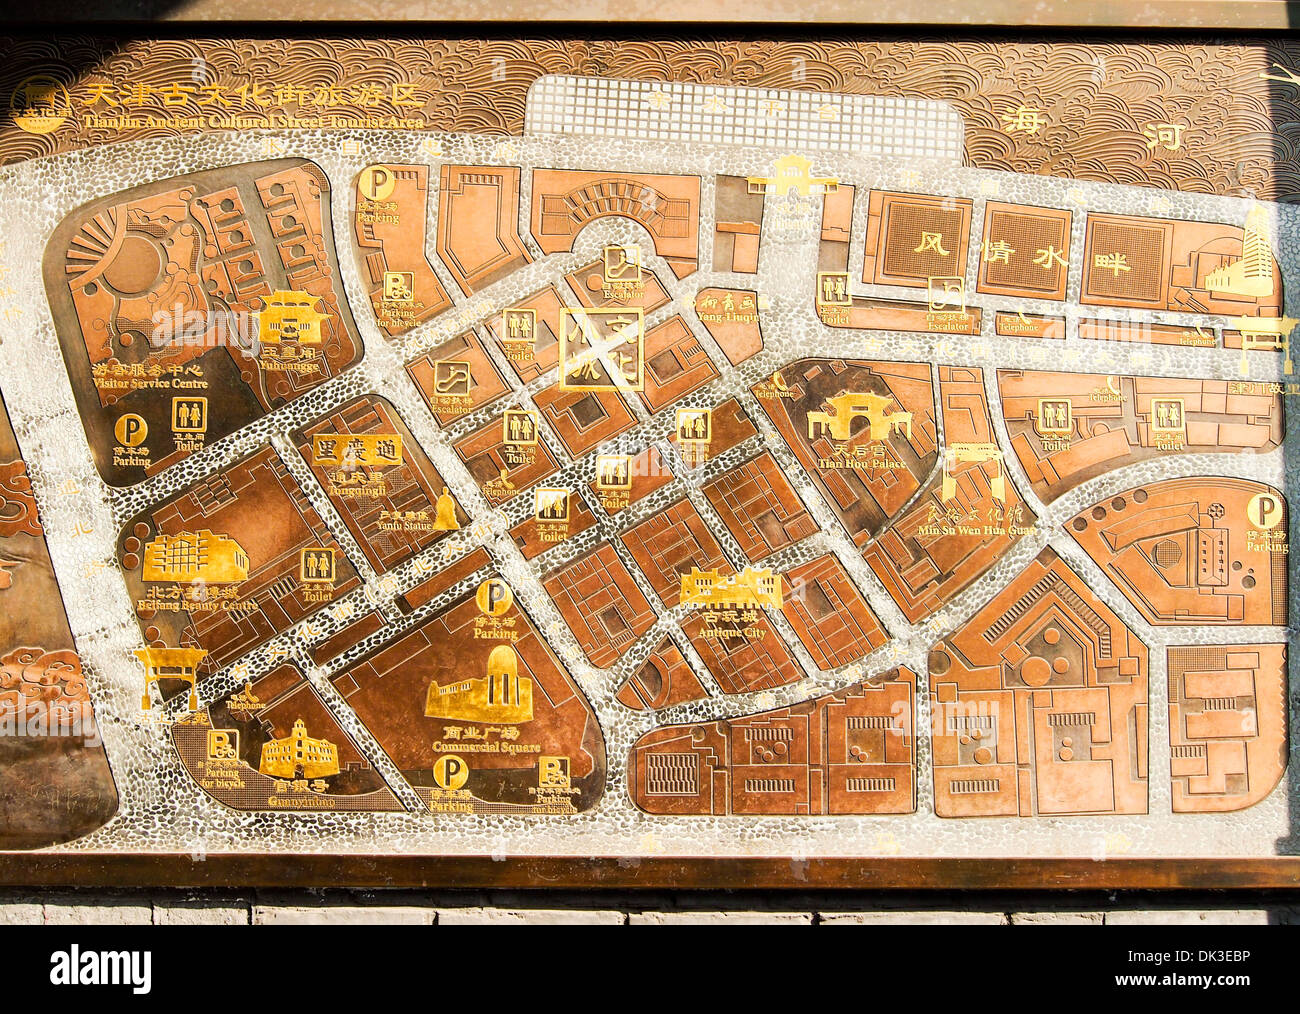 China, Tianjin map for tourists Stock Photo